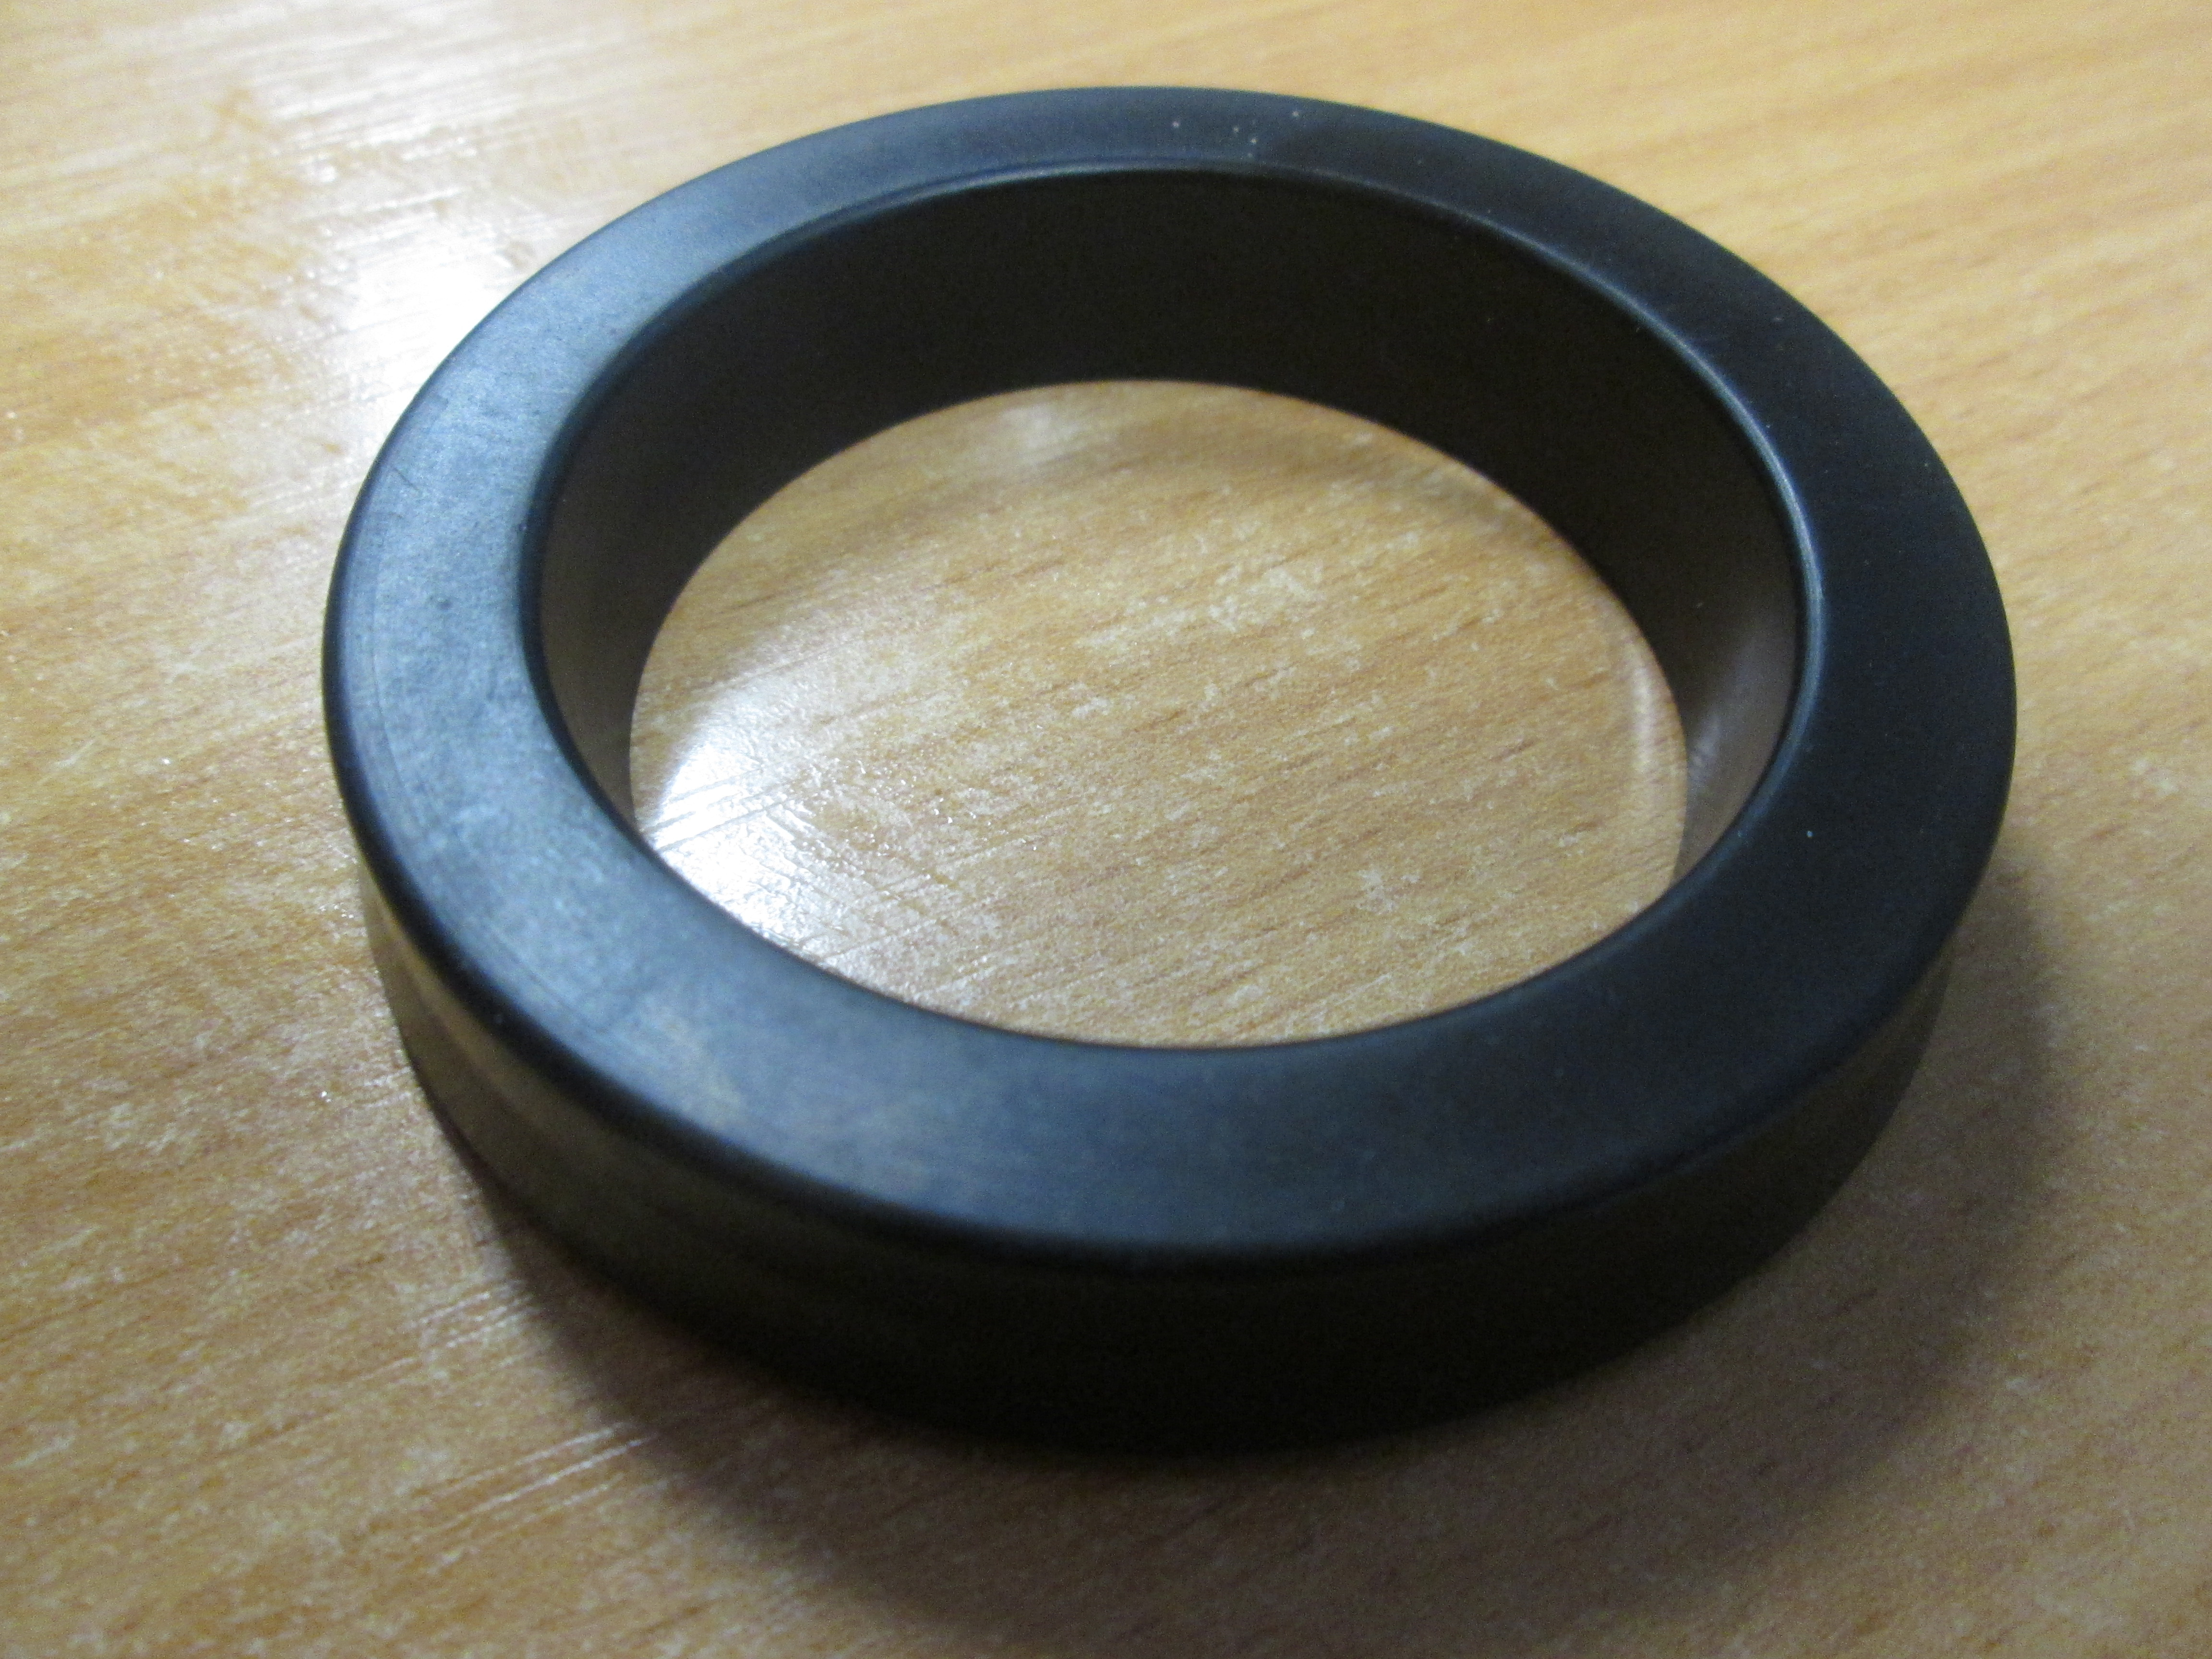 External Distributor Seal, Imperial 2.1/8inch x 2.7/8inch x 1/2